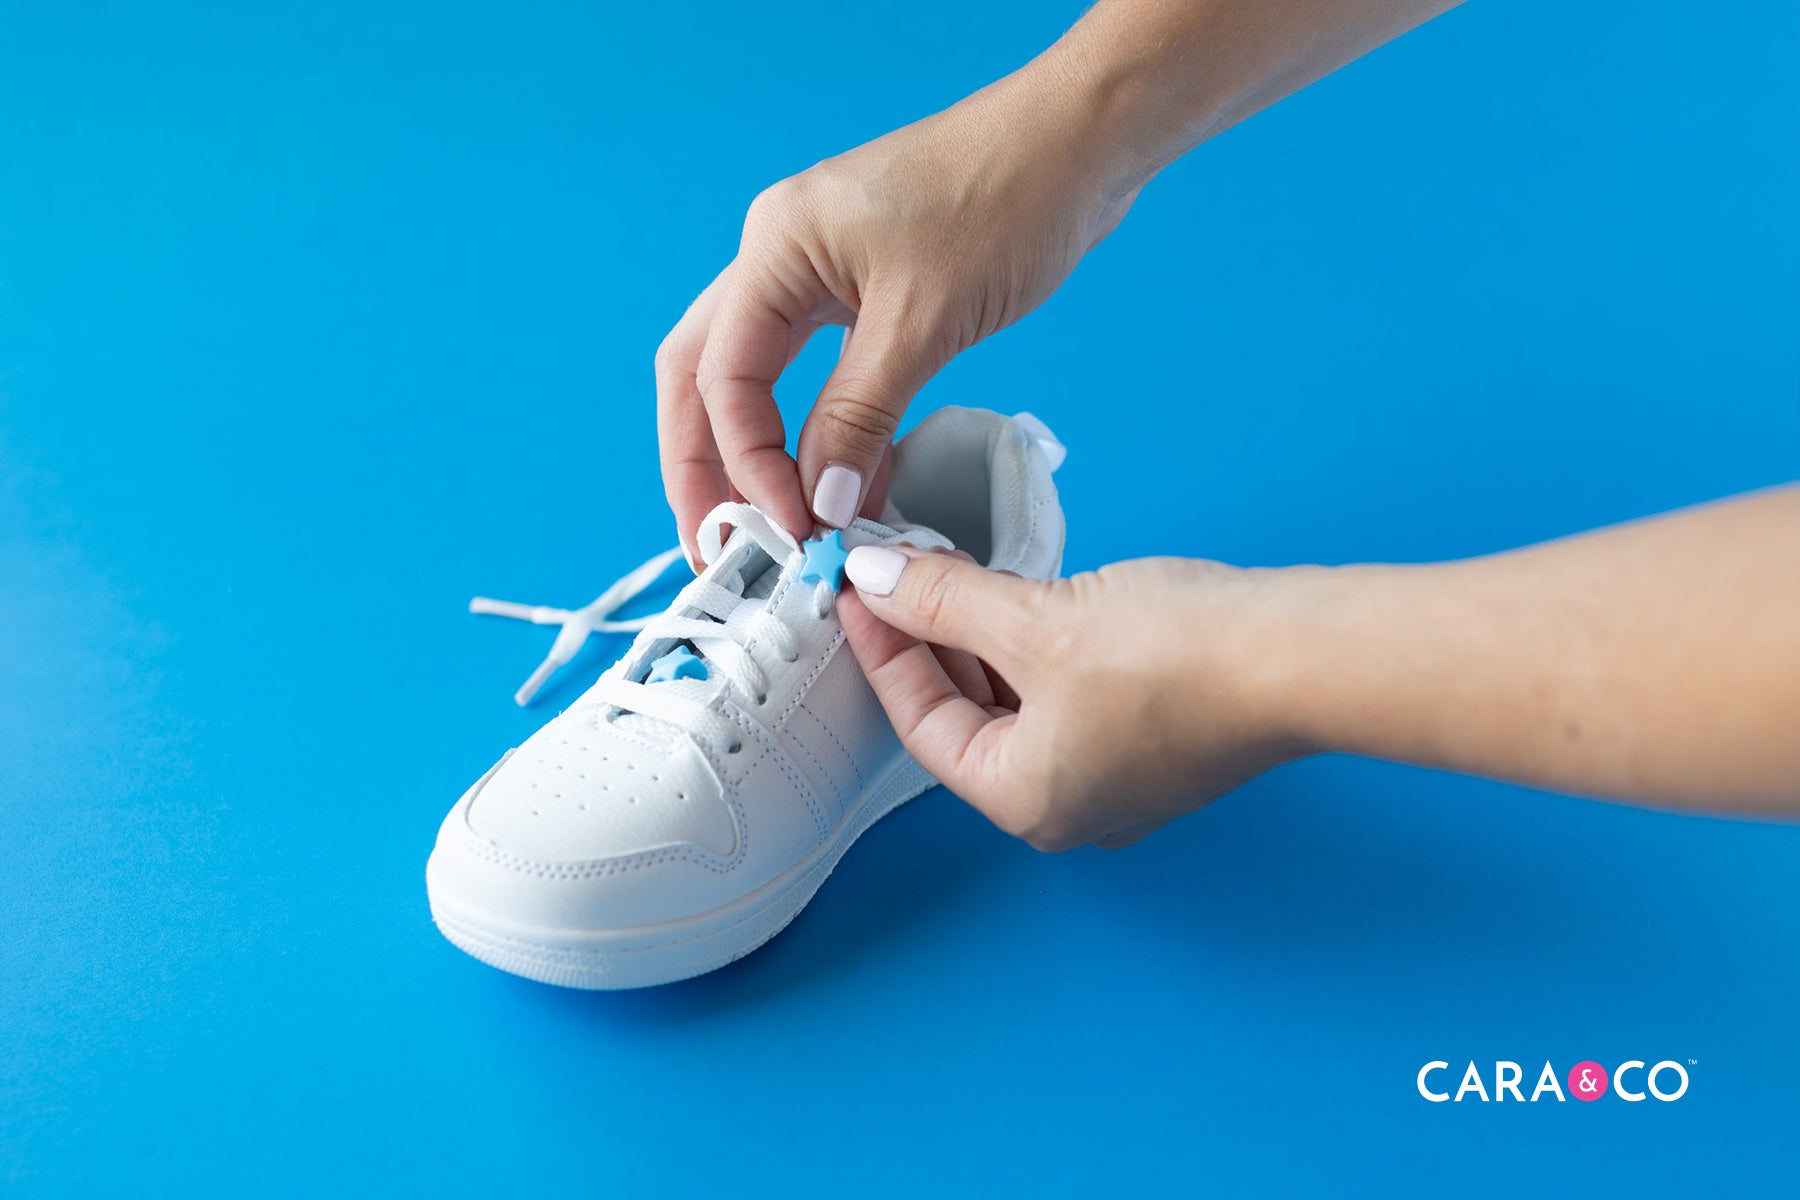 Back to school in style - Shoelace bling!